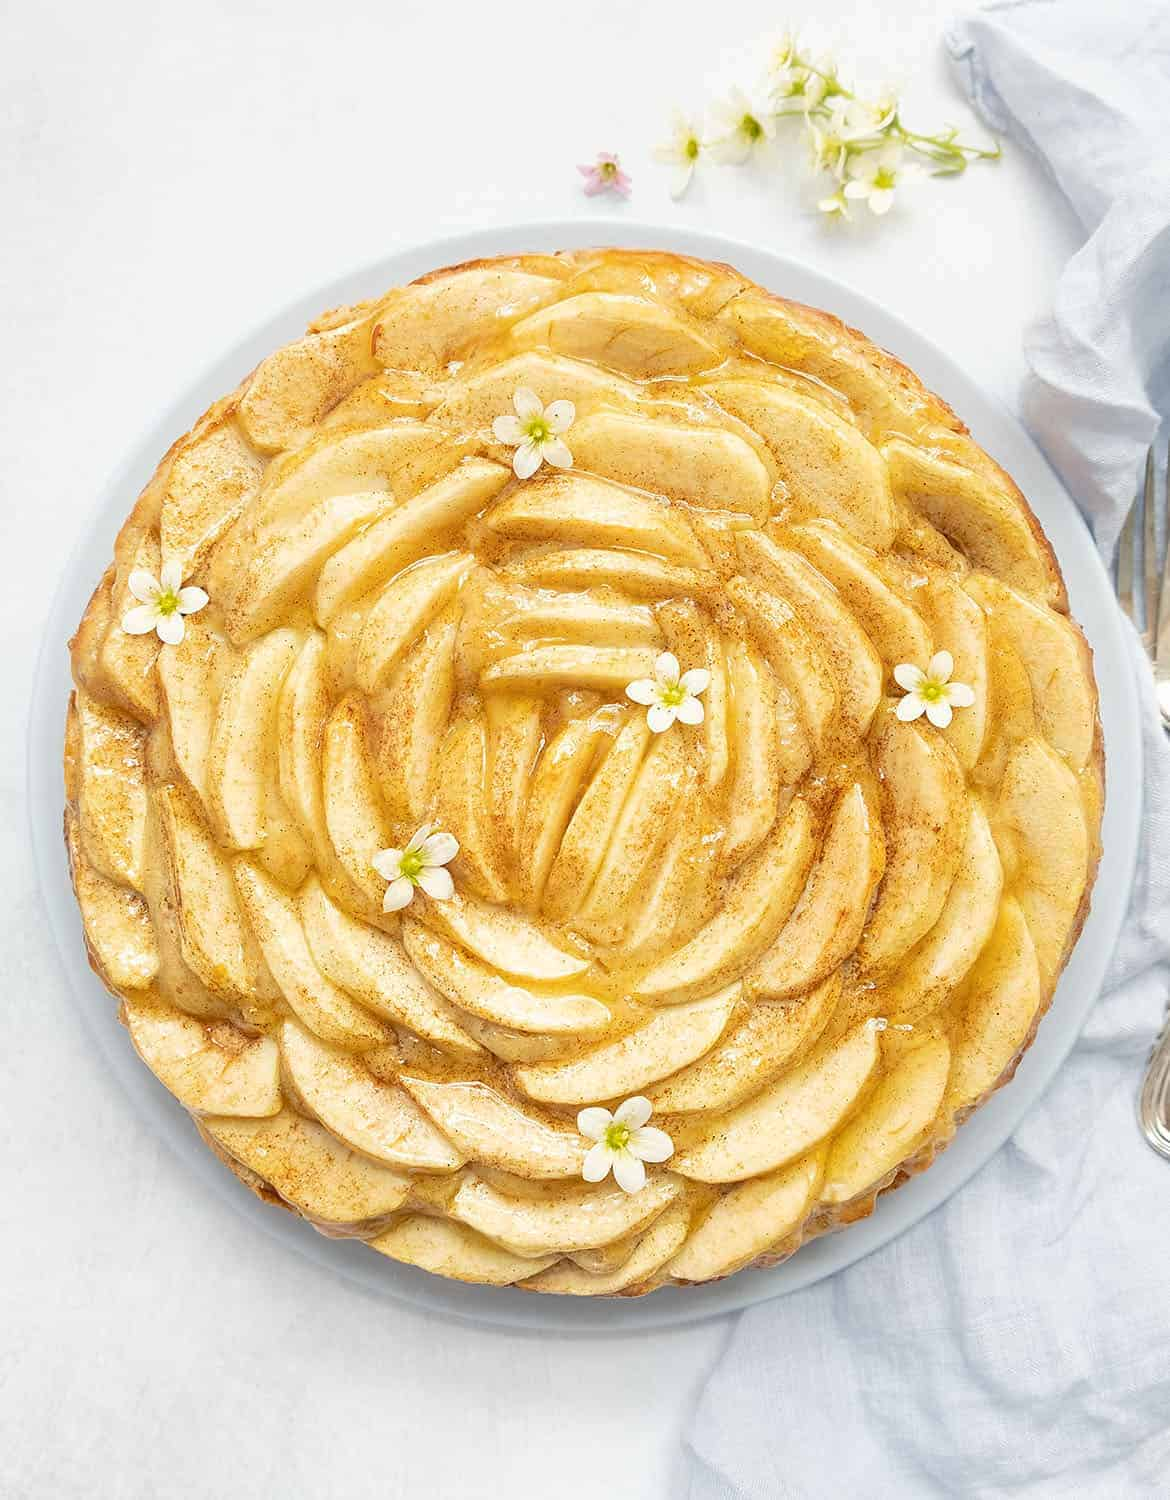 A round apple cake decorated with small flowers - The Clever Meal